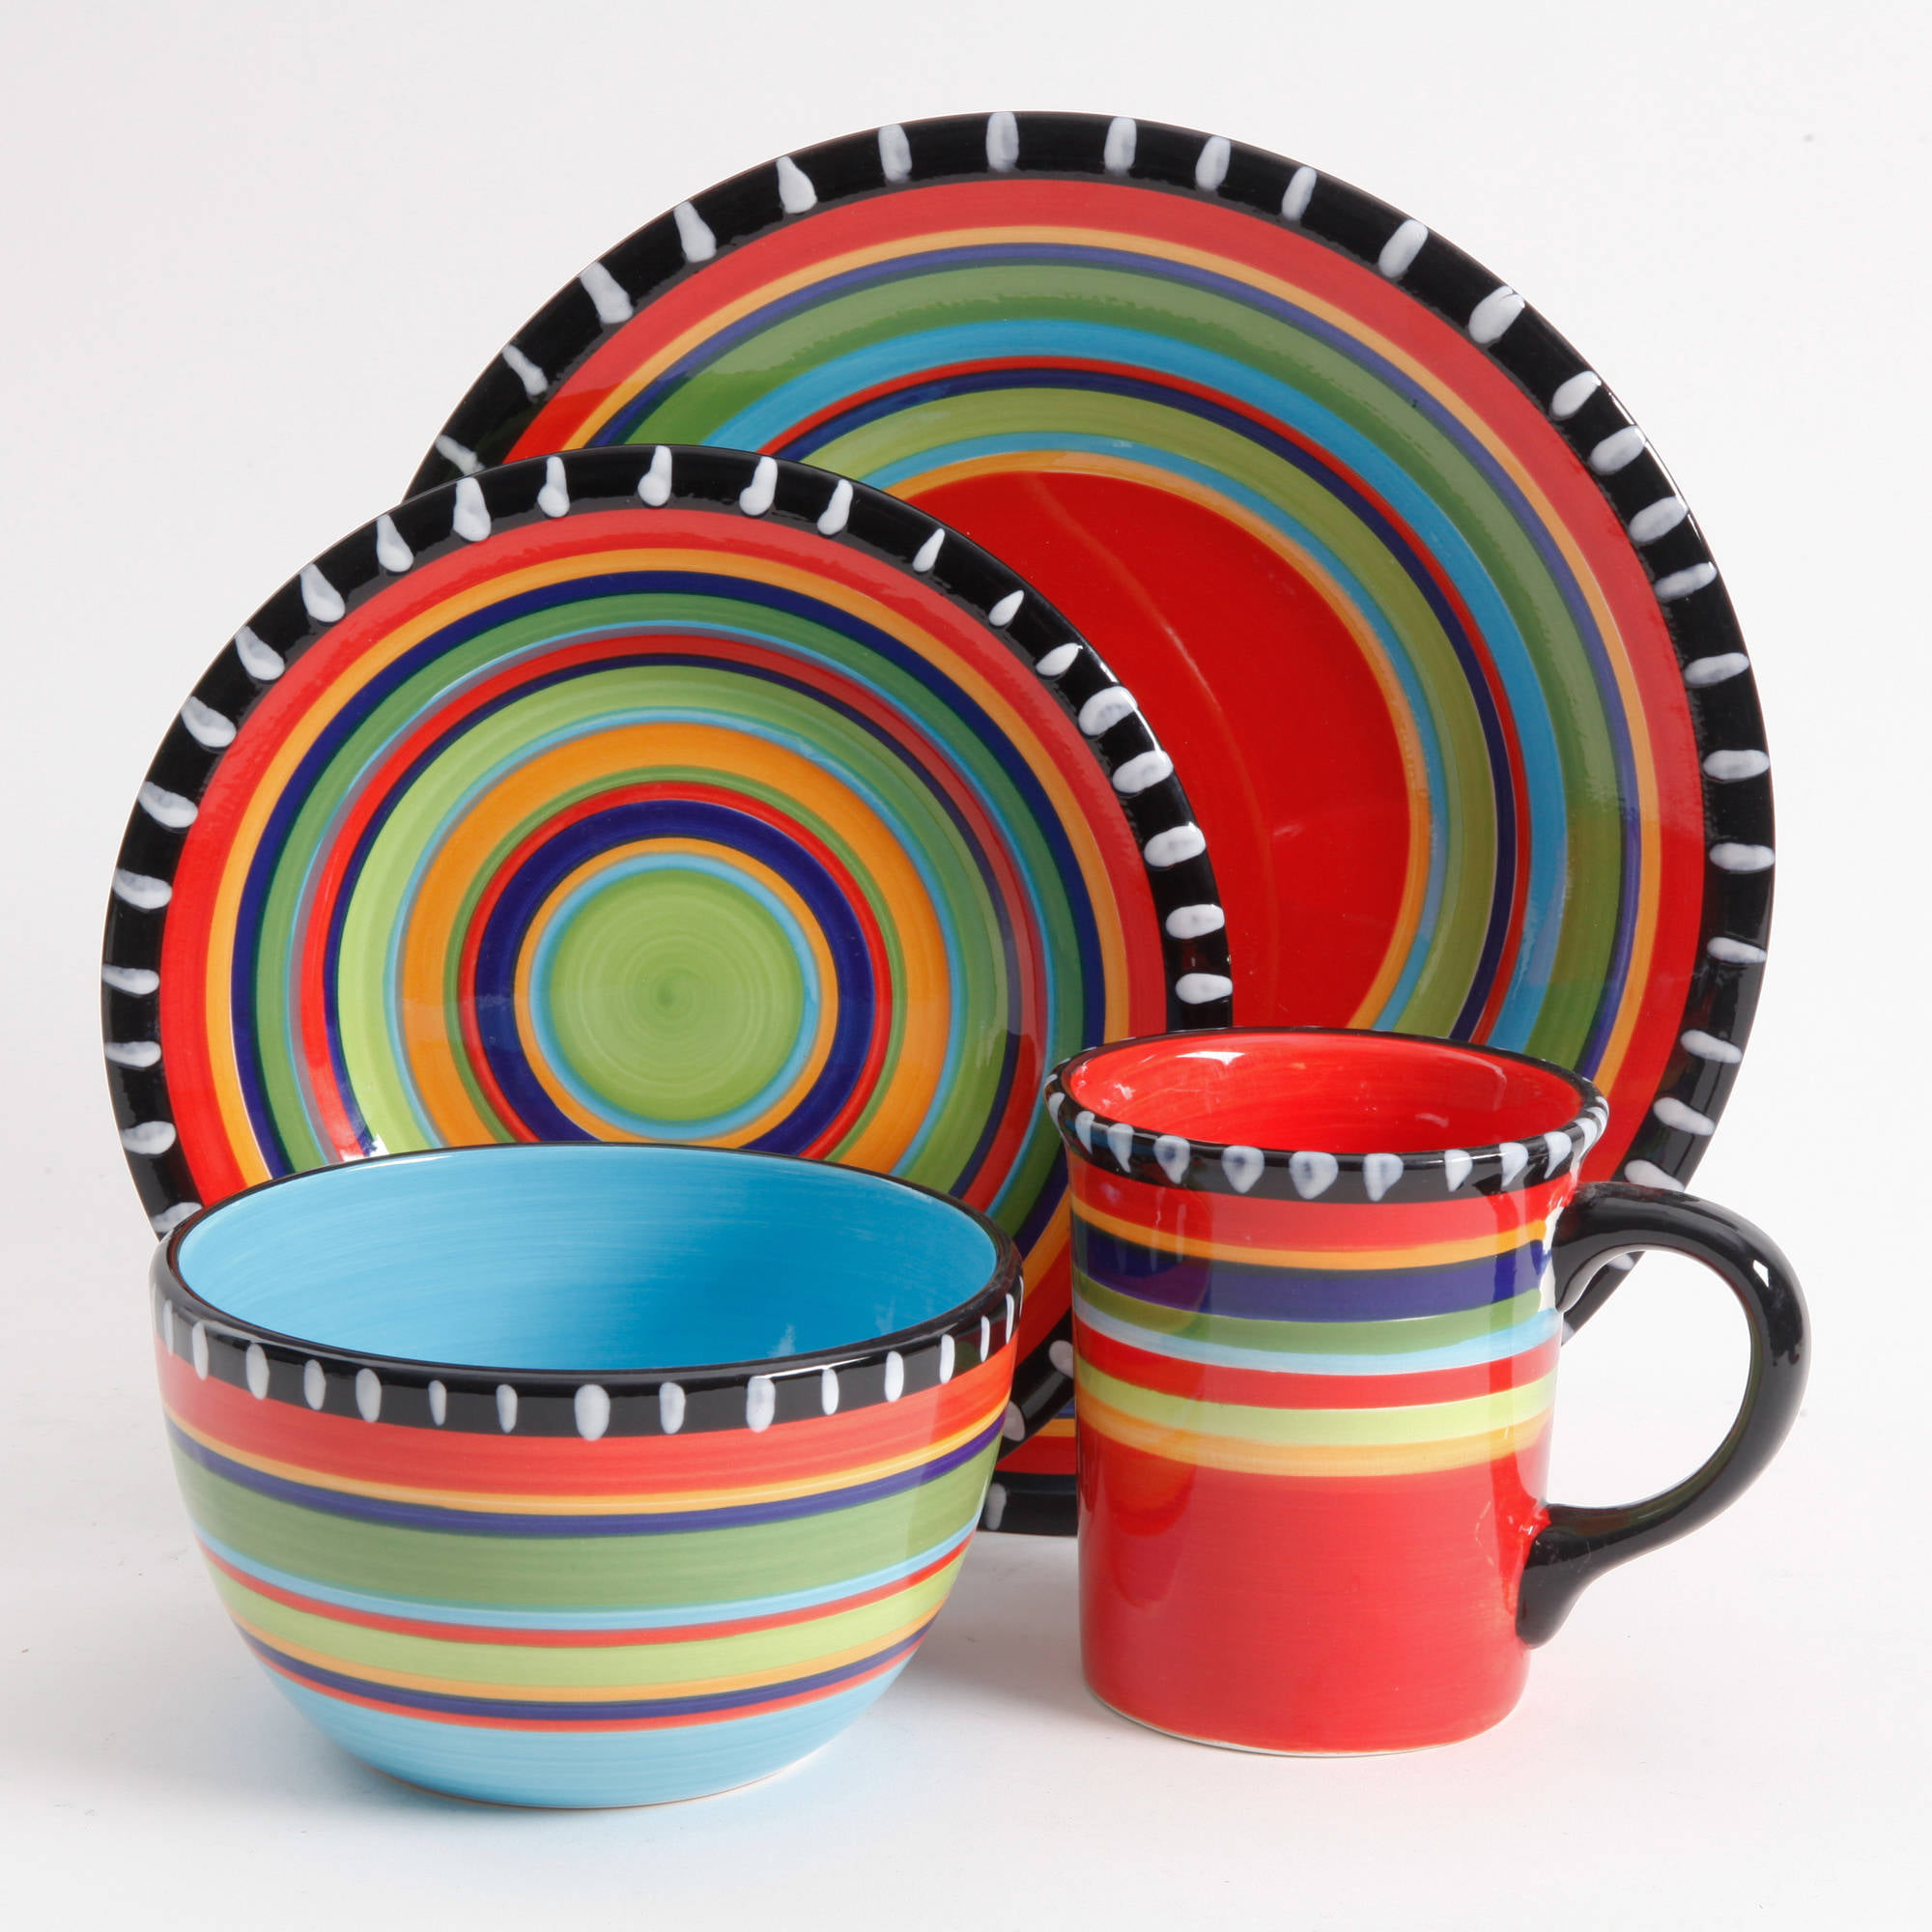 Gibson Home Pueblo Springs Handpainted 16-Piece Dinnerware Set Multi-Color - Walmart.com & Gibson Home Pueblo Springs Handpainted 16-Piece Dinnerware Set ...